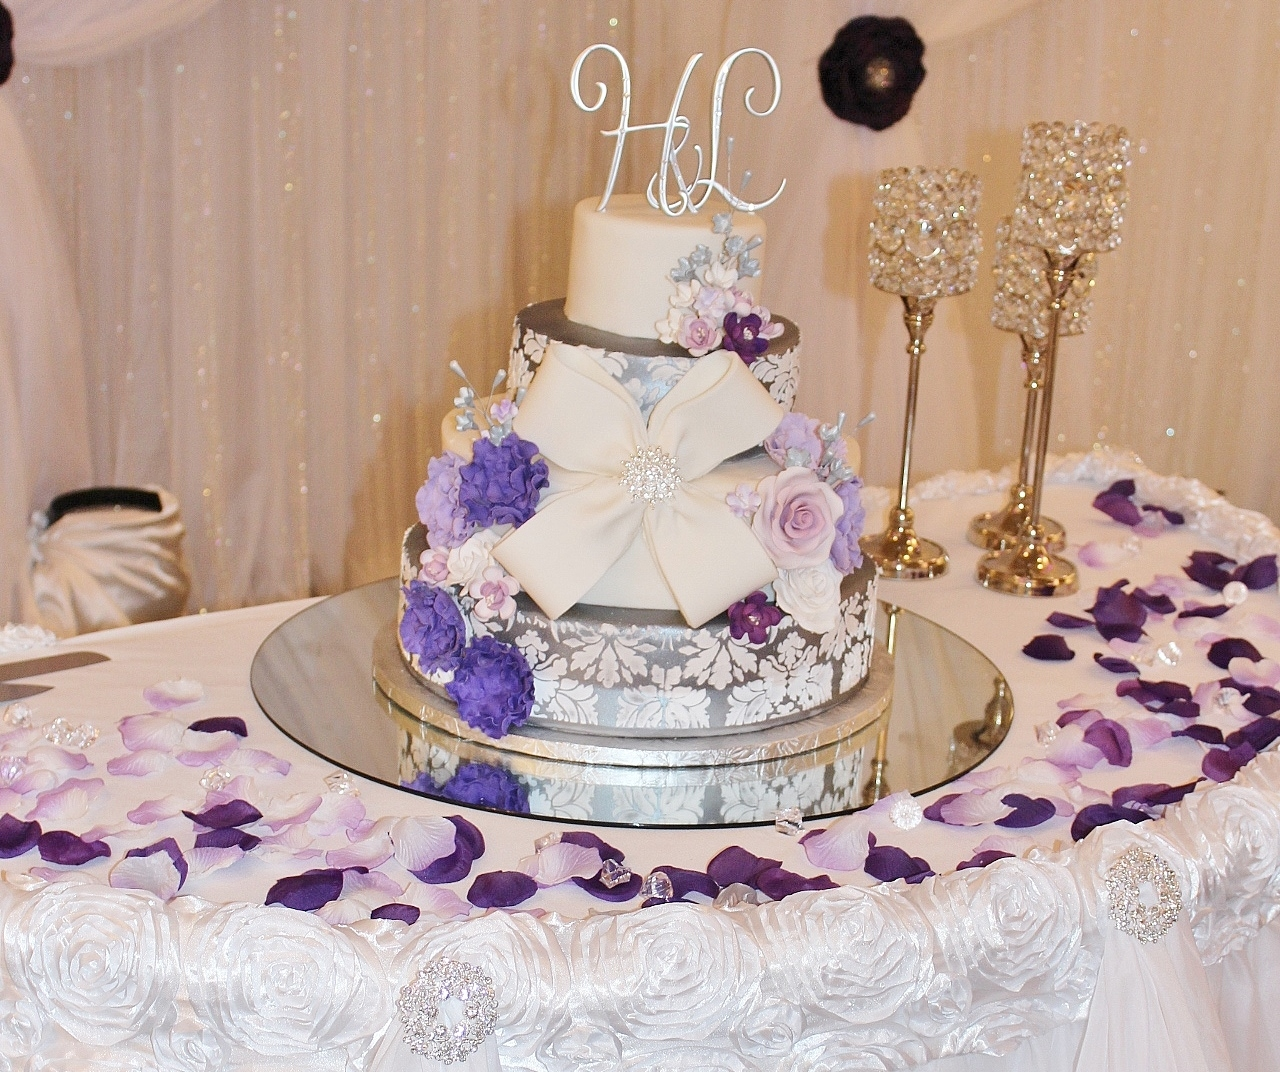 Sugar House Cakes specialty custom cakes for weddings